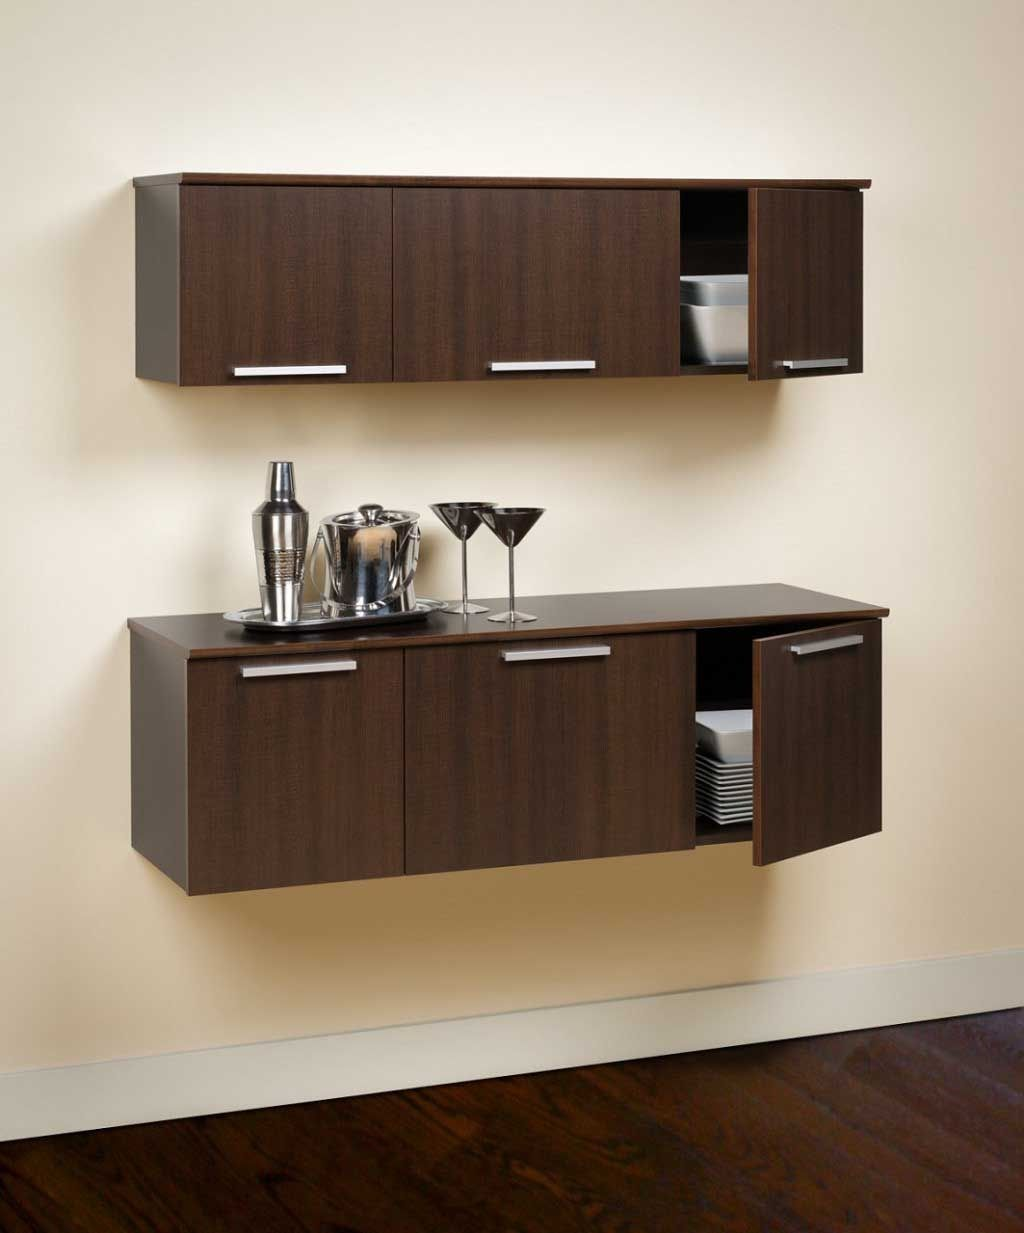 wall mounted cabinets office. Office Wall Mounted Storage Cabinets A